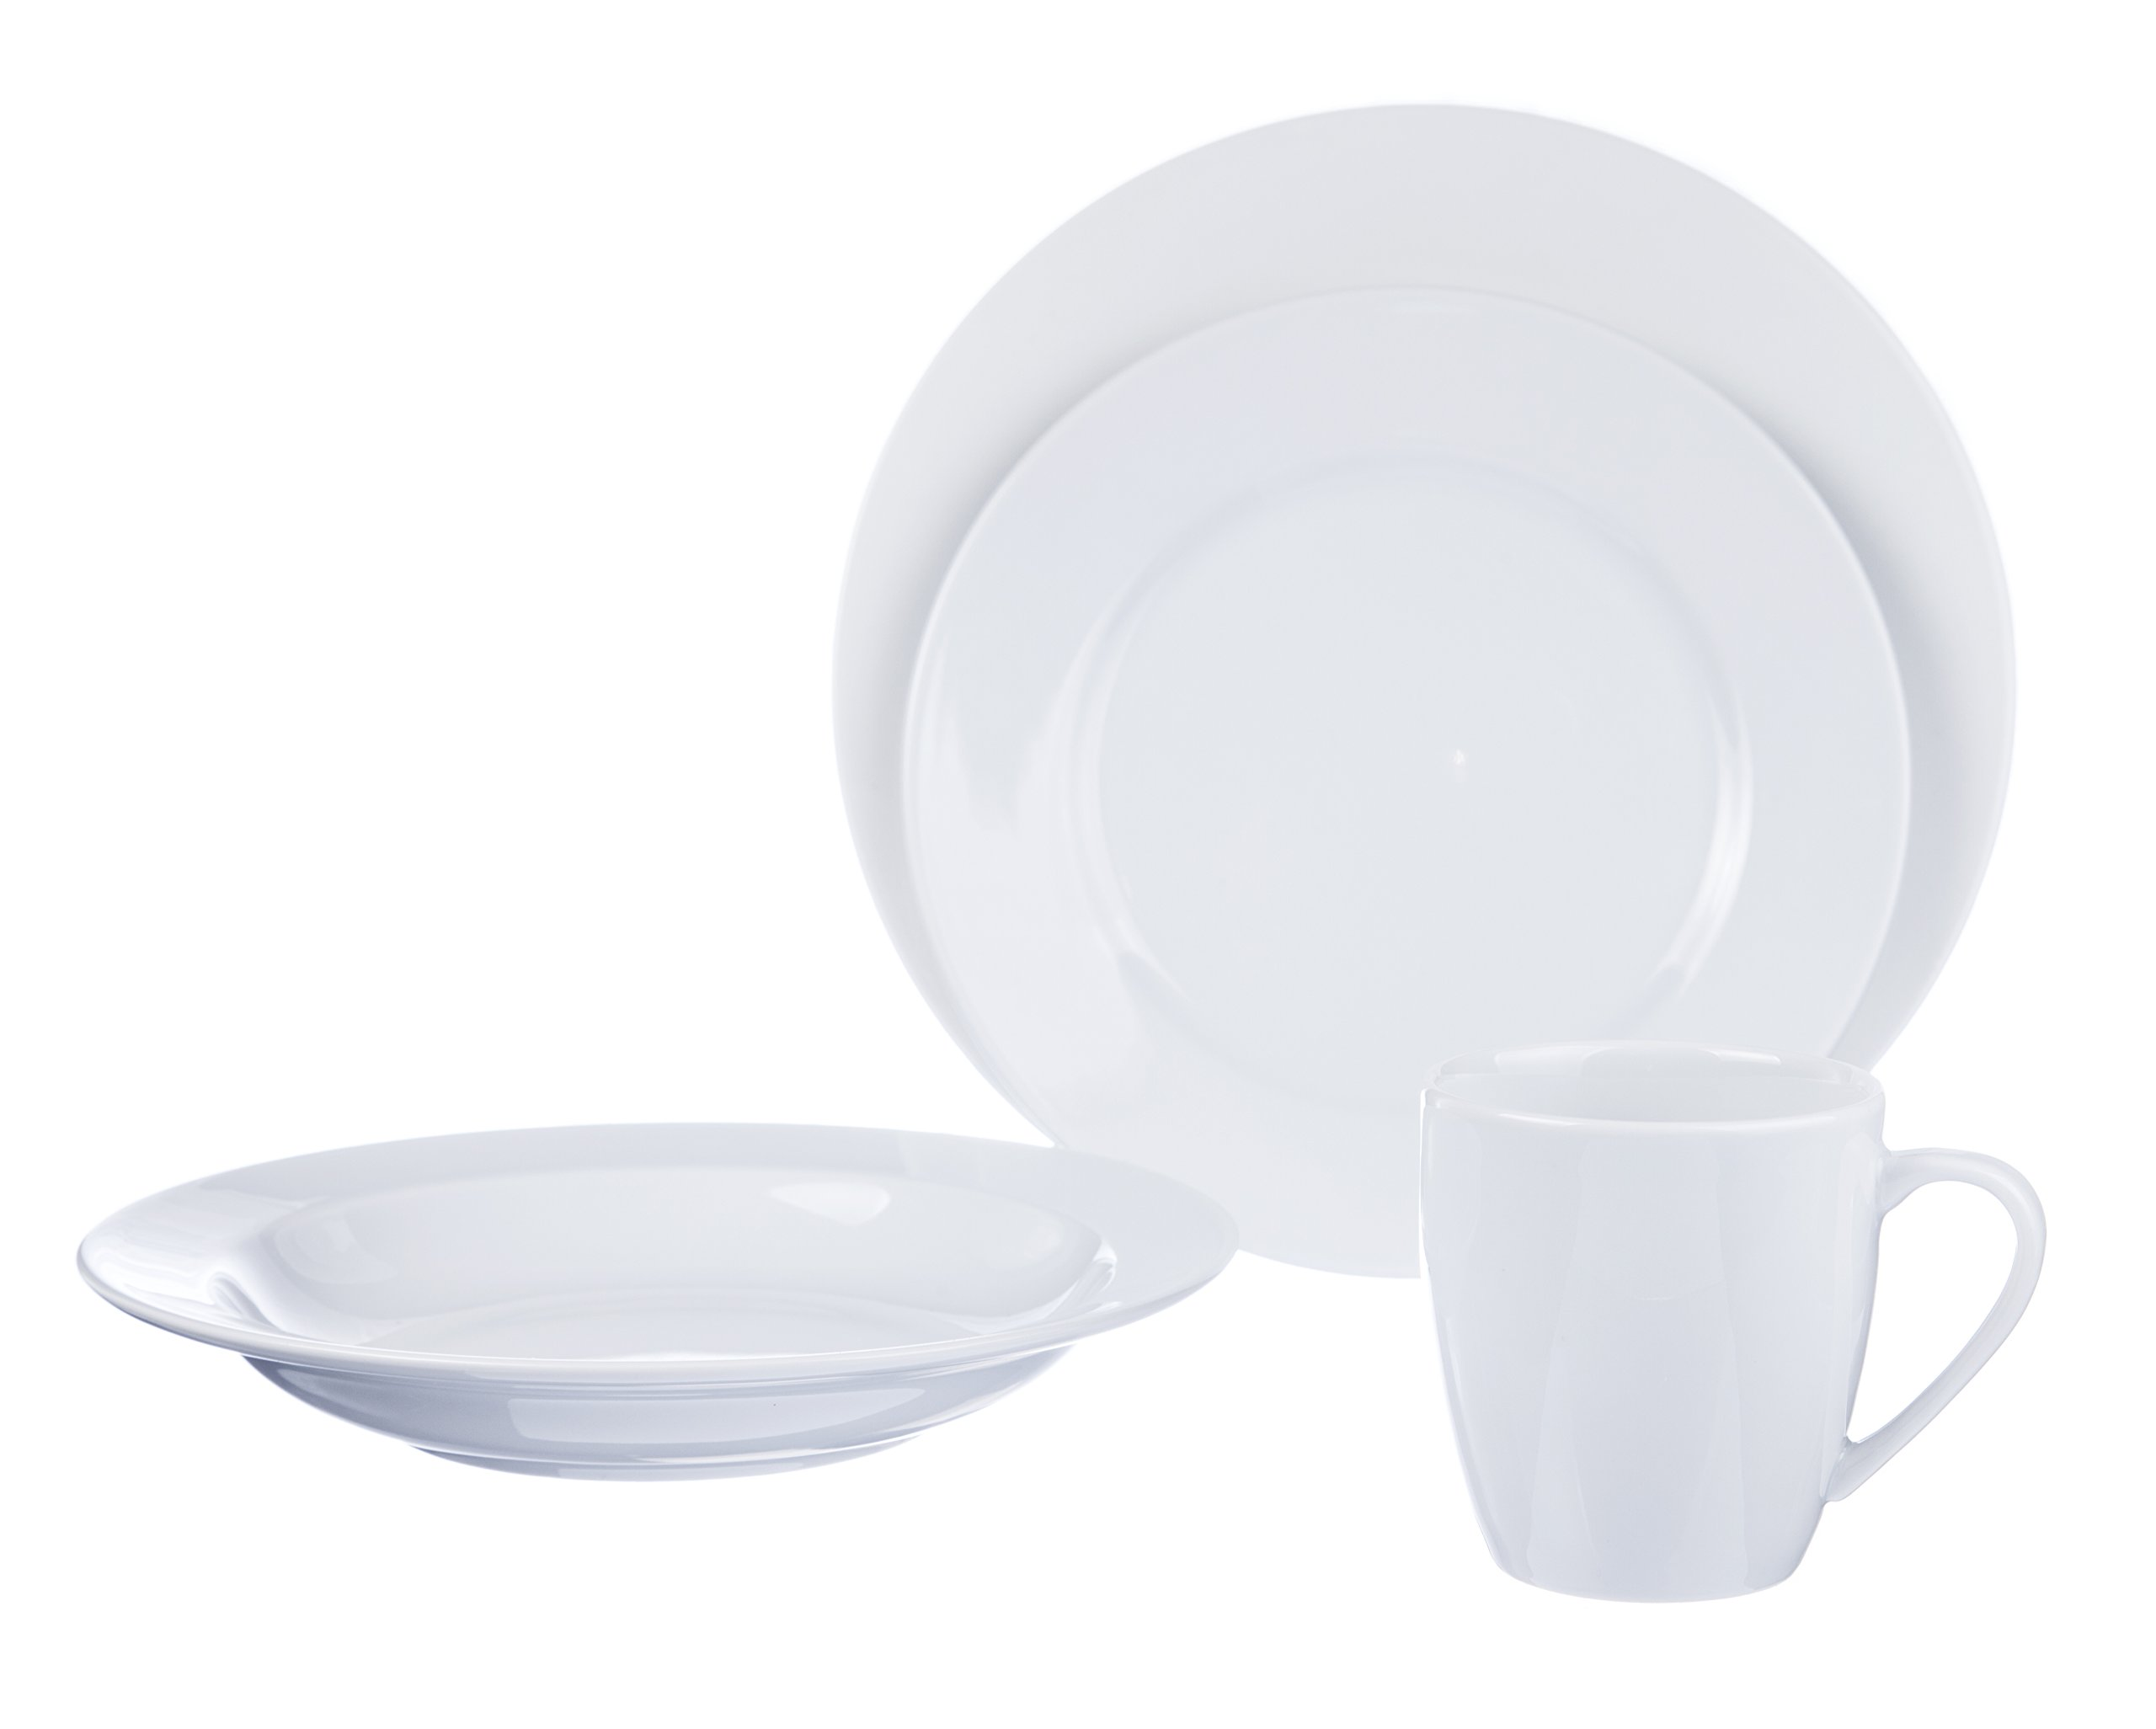 4-Piece DINNERWARE Set (for 1 person), White Porcelain, Restaurant&Hotel Quality